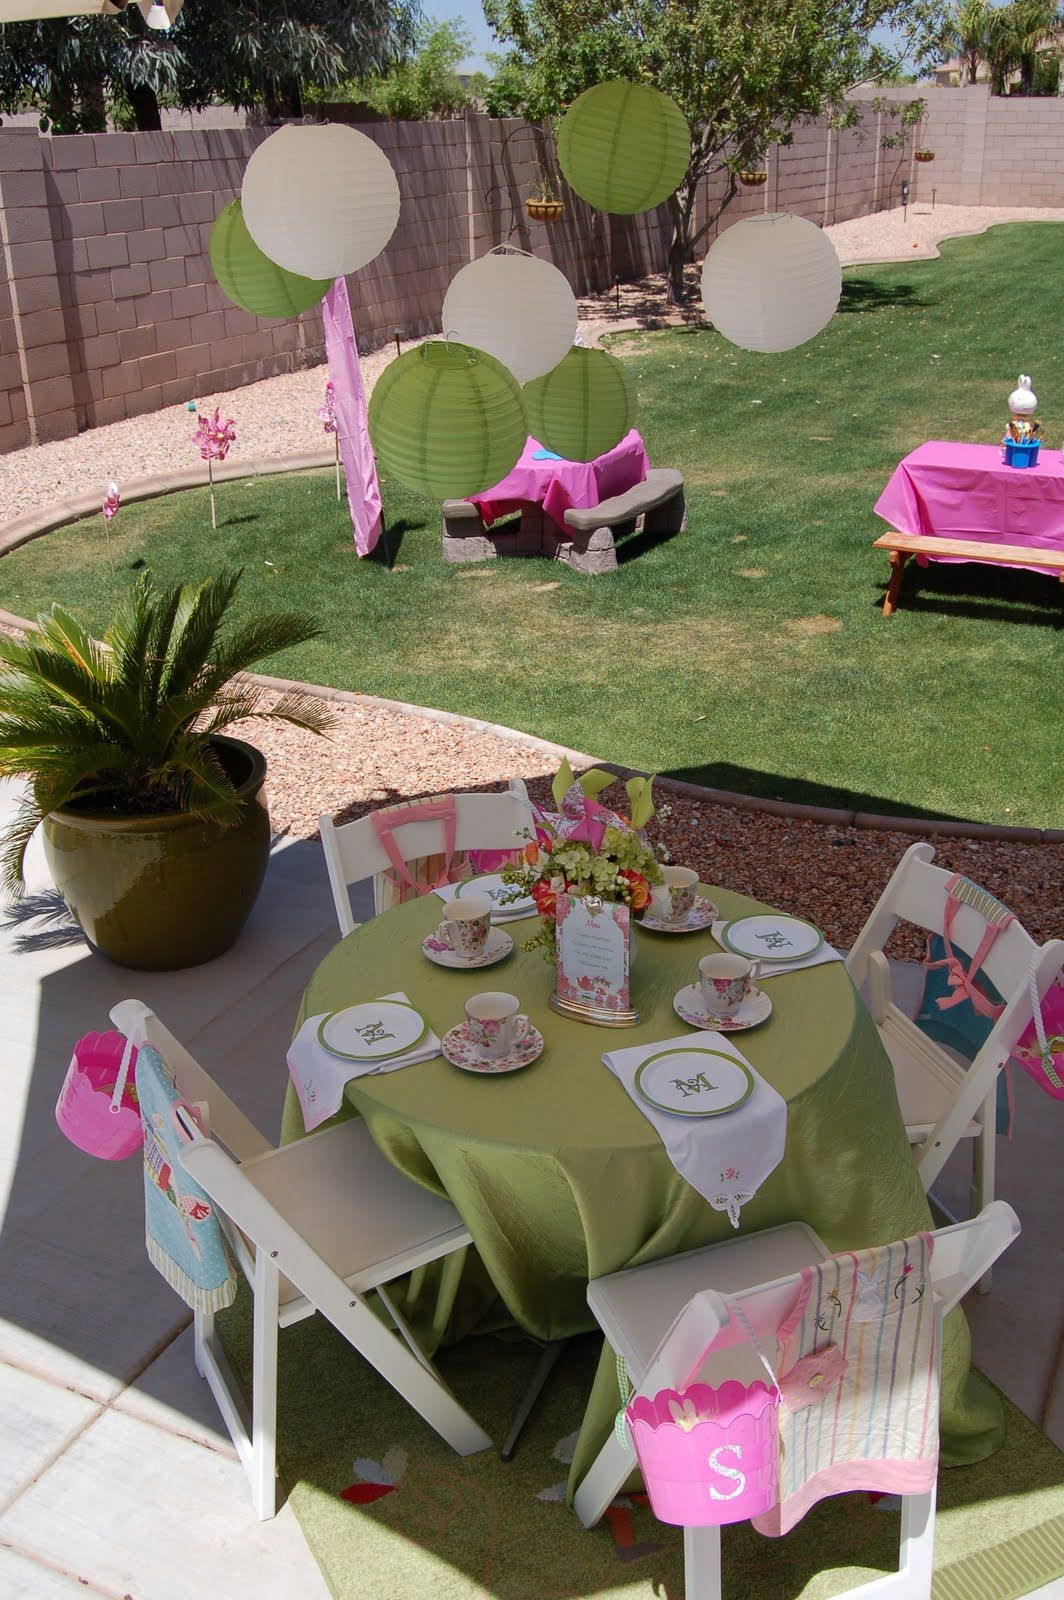 Outdoor easter decorations pinterest - Easter I Wish The Weather Would Be Like This Out For Easter